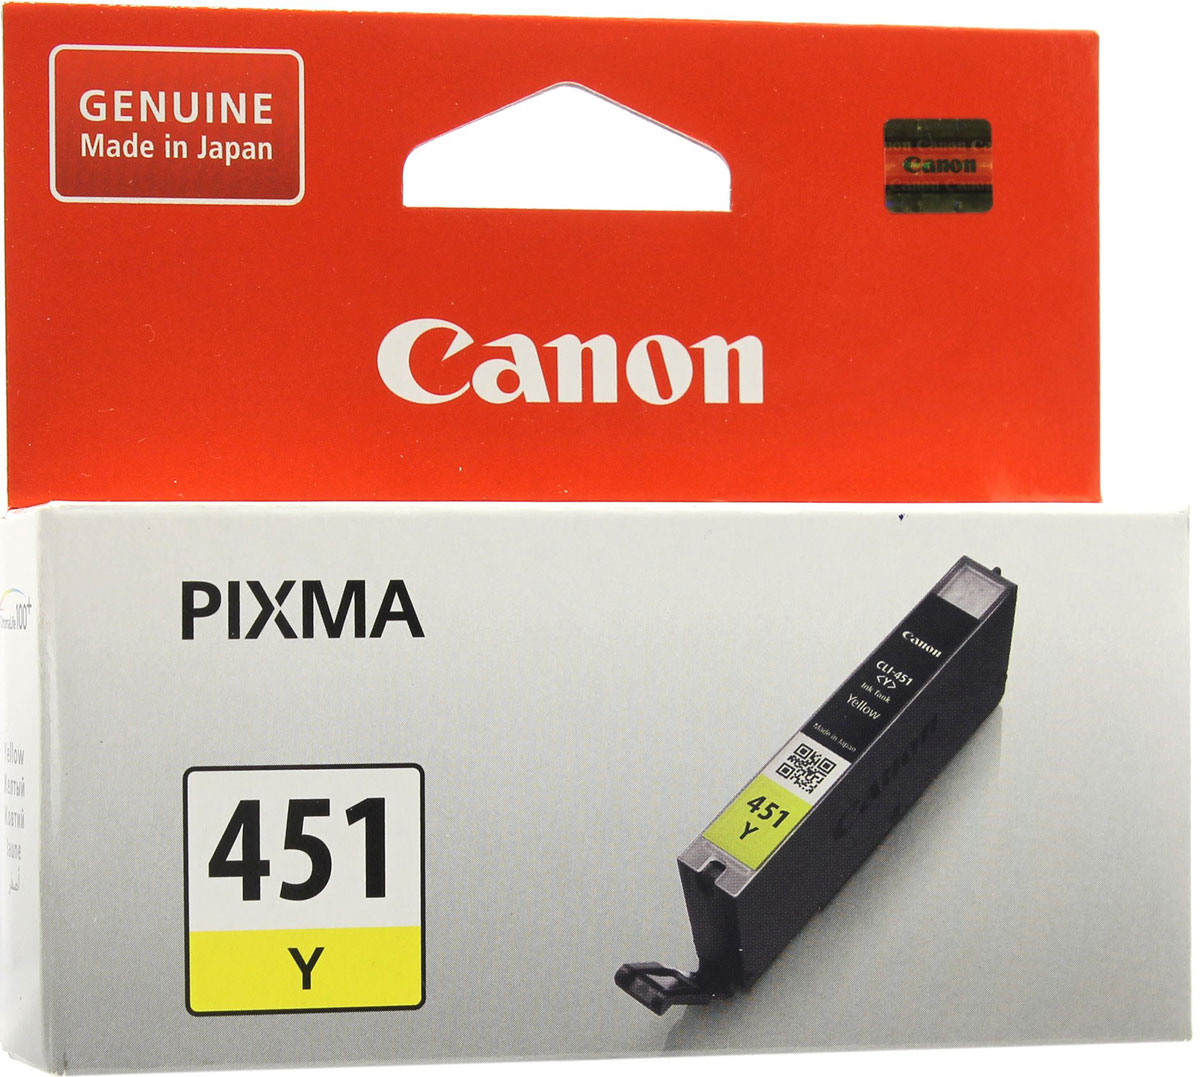 Canon CLI-451, Yellow картридж для PIXMA MG6340/MG5440/IP7240 картридж для принтера colouring cg cli 426c cyan